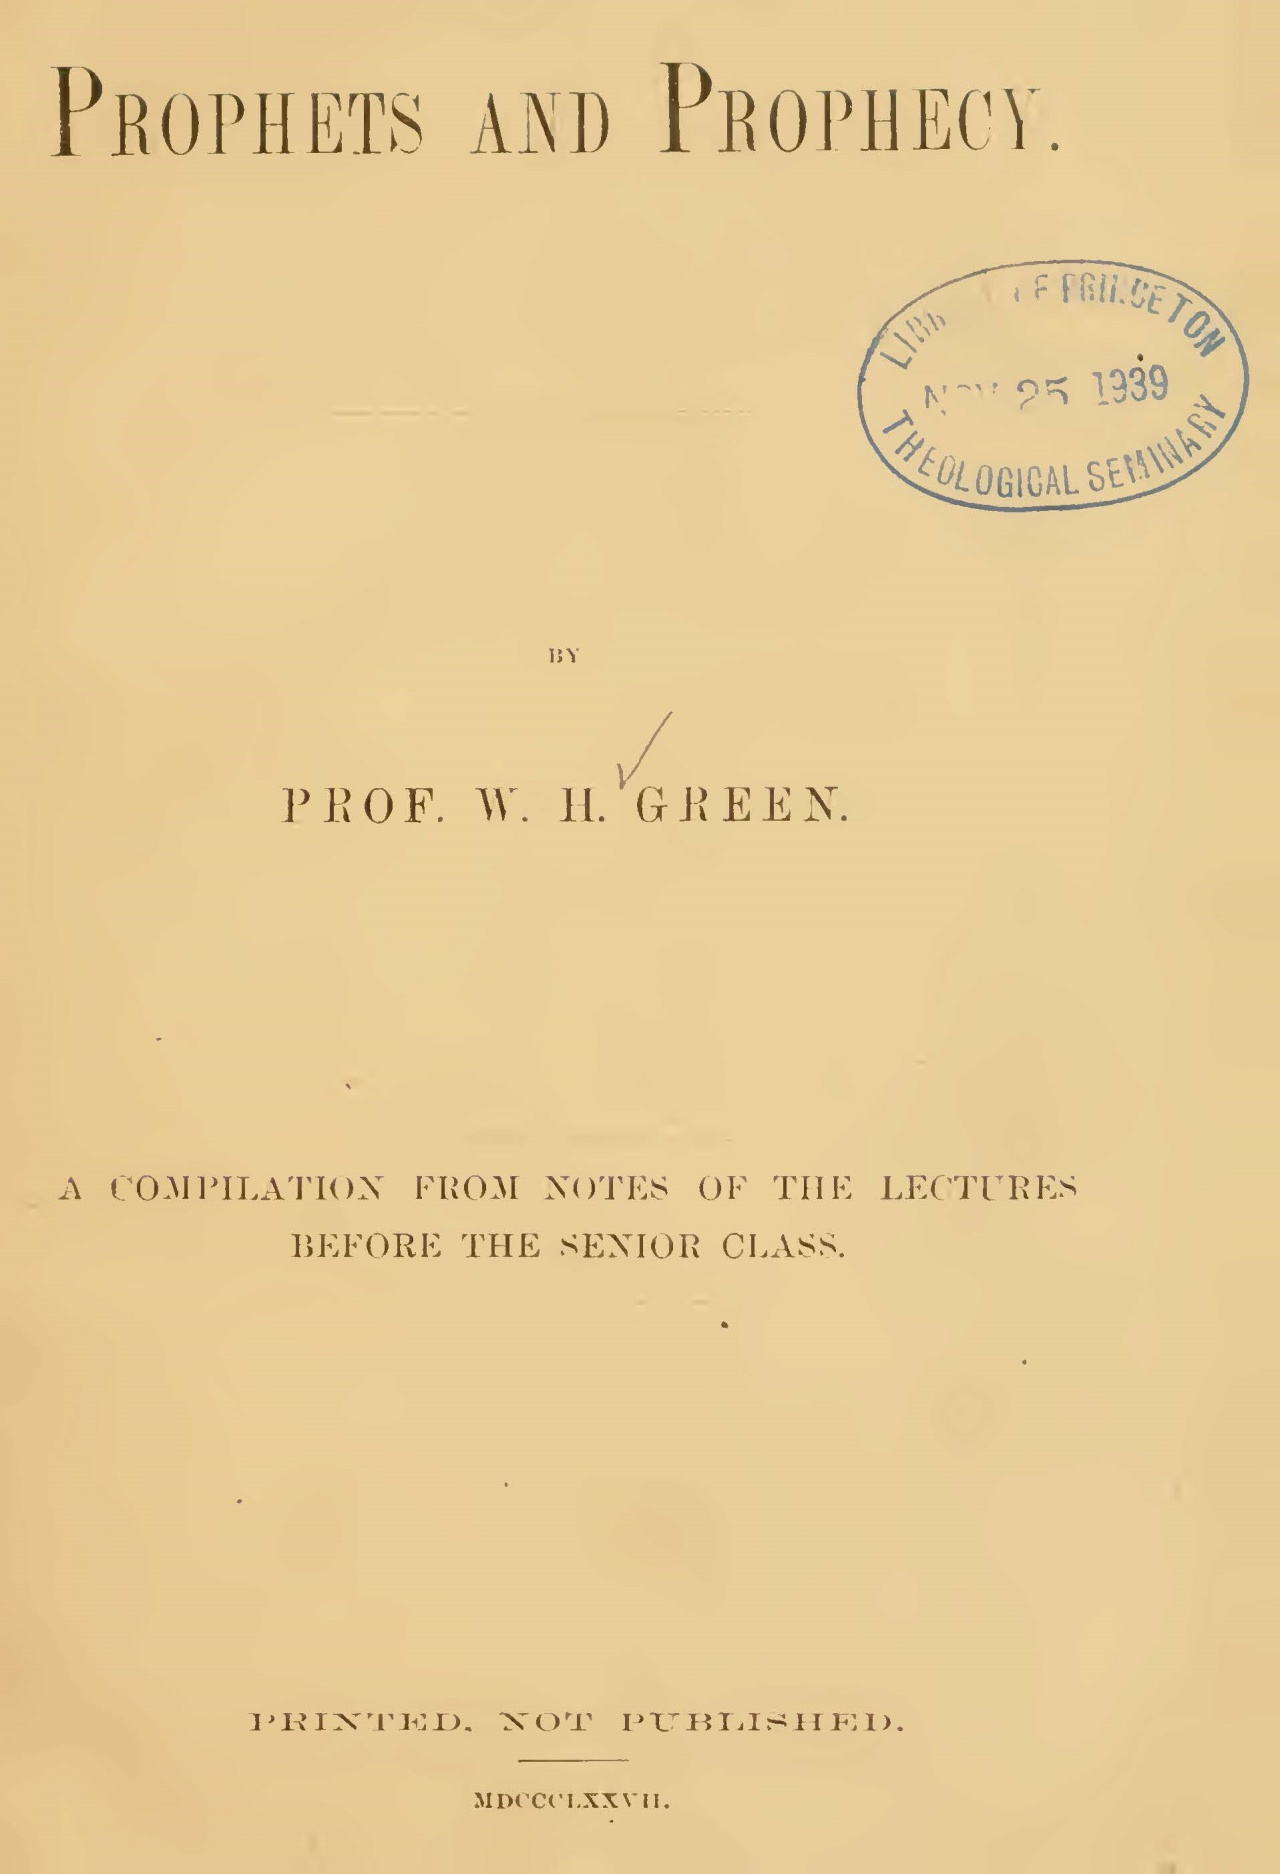 Green, William Henry, Prophets and Prophecy Title Page.jpg